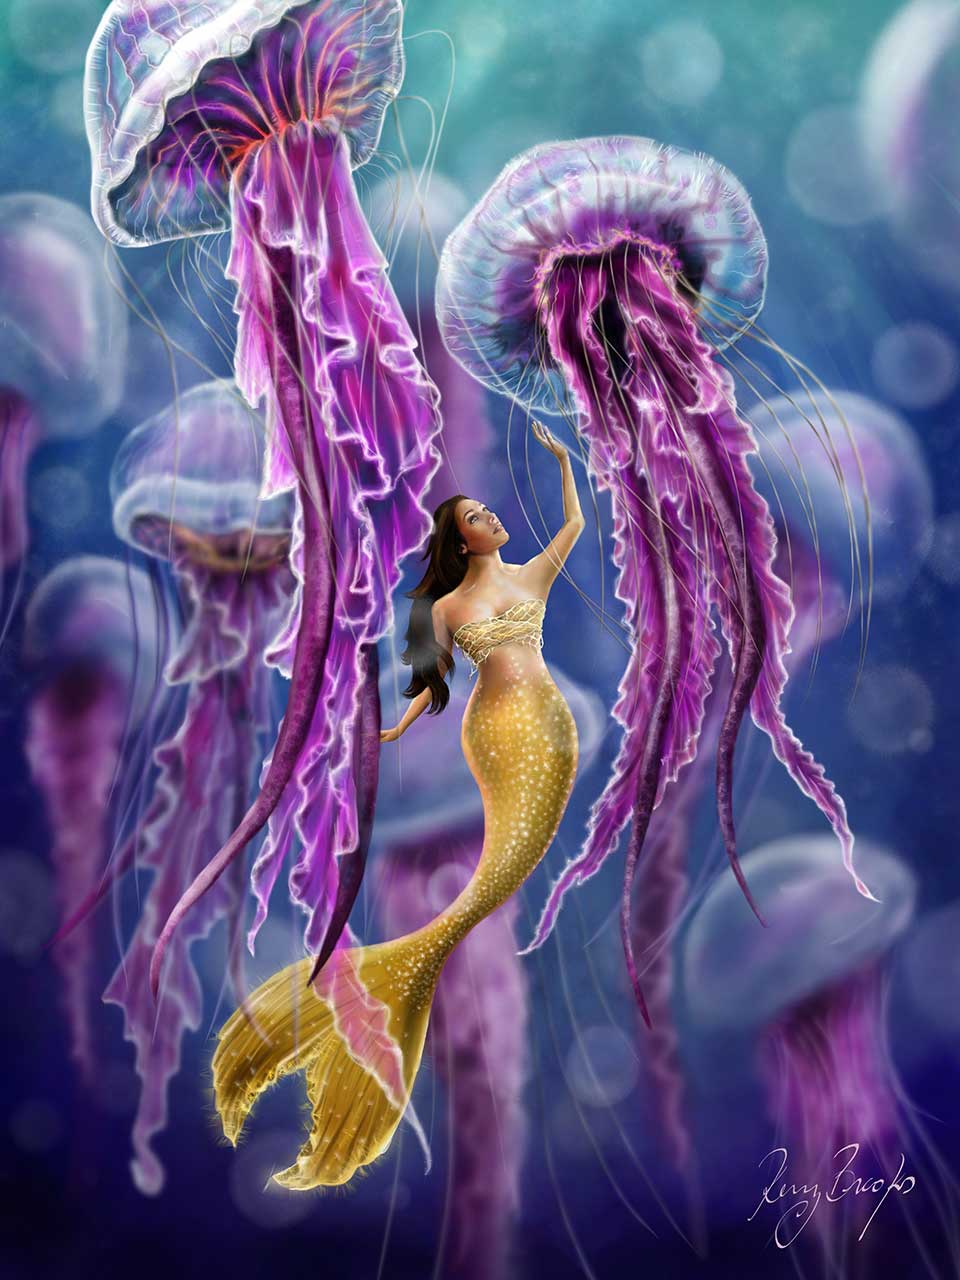 A mermaid with Jellyfish